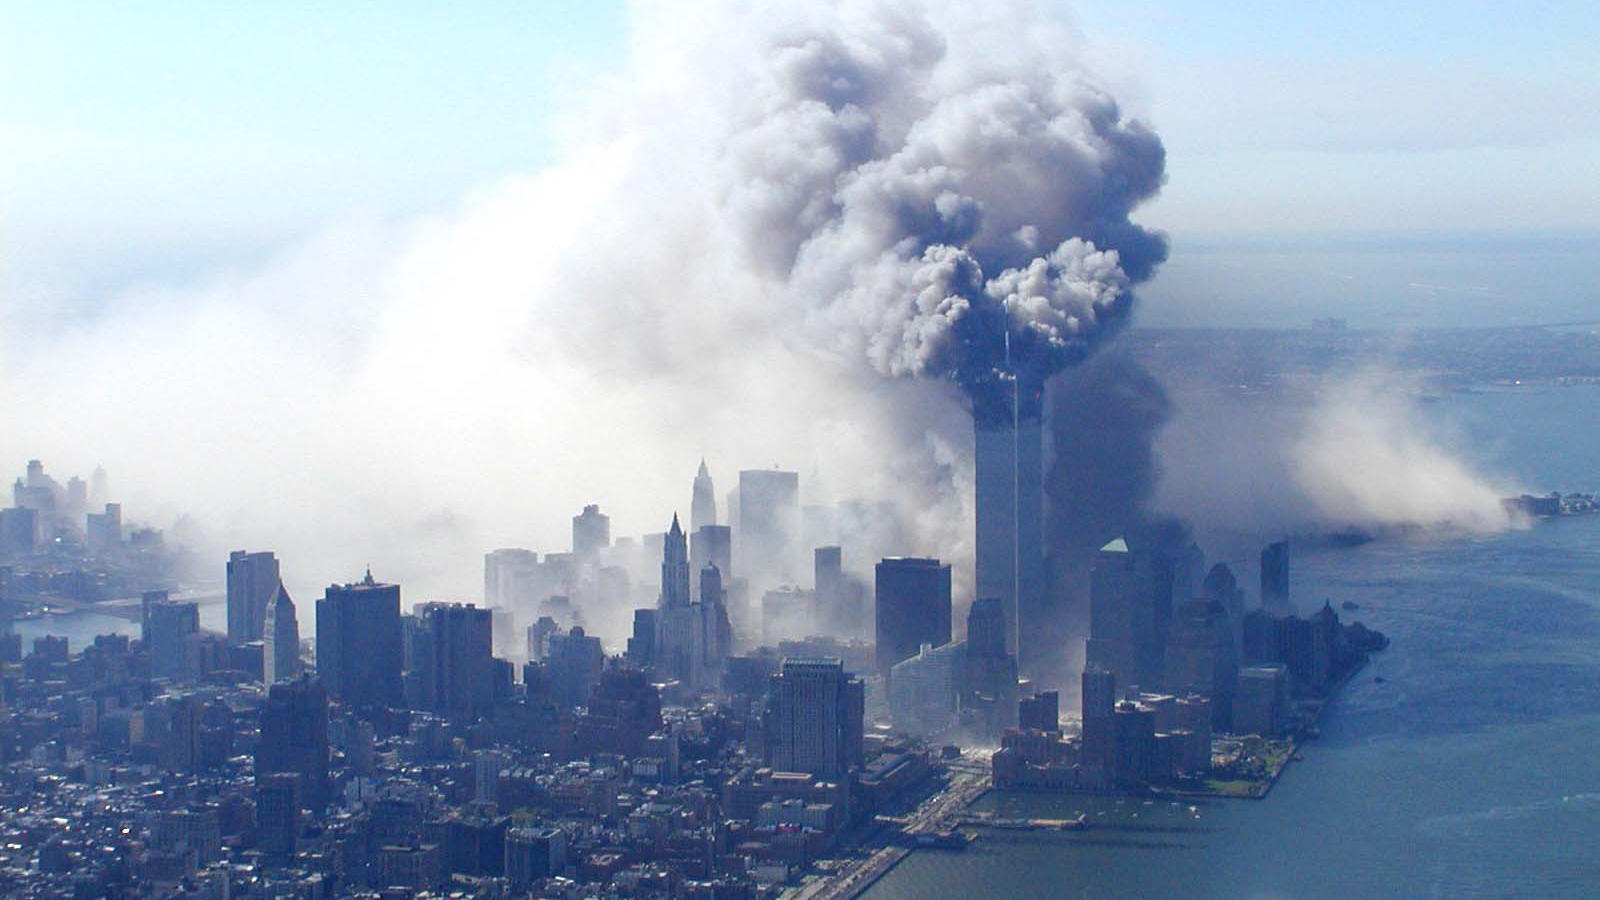 A photograph of the World Trade Centre attack